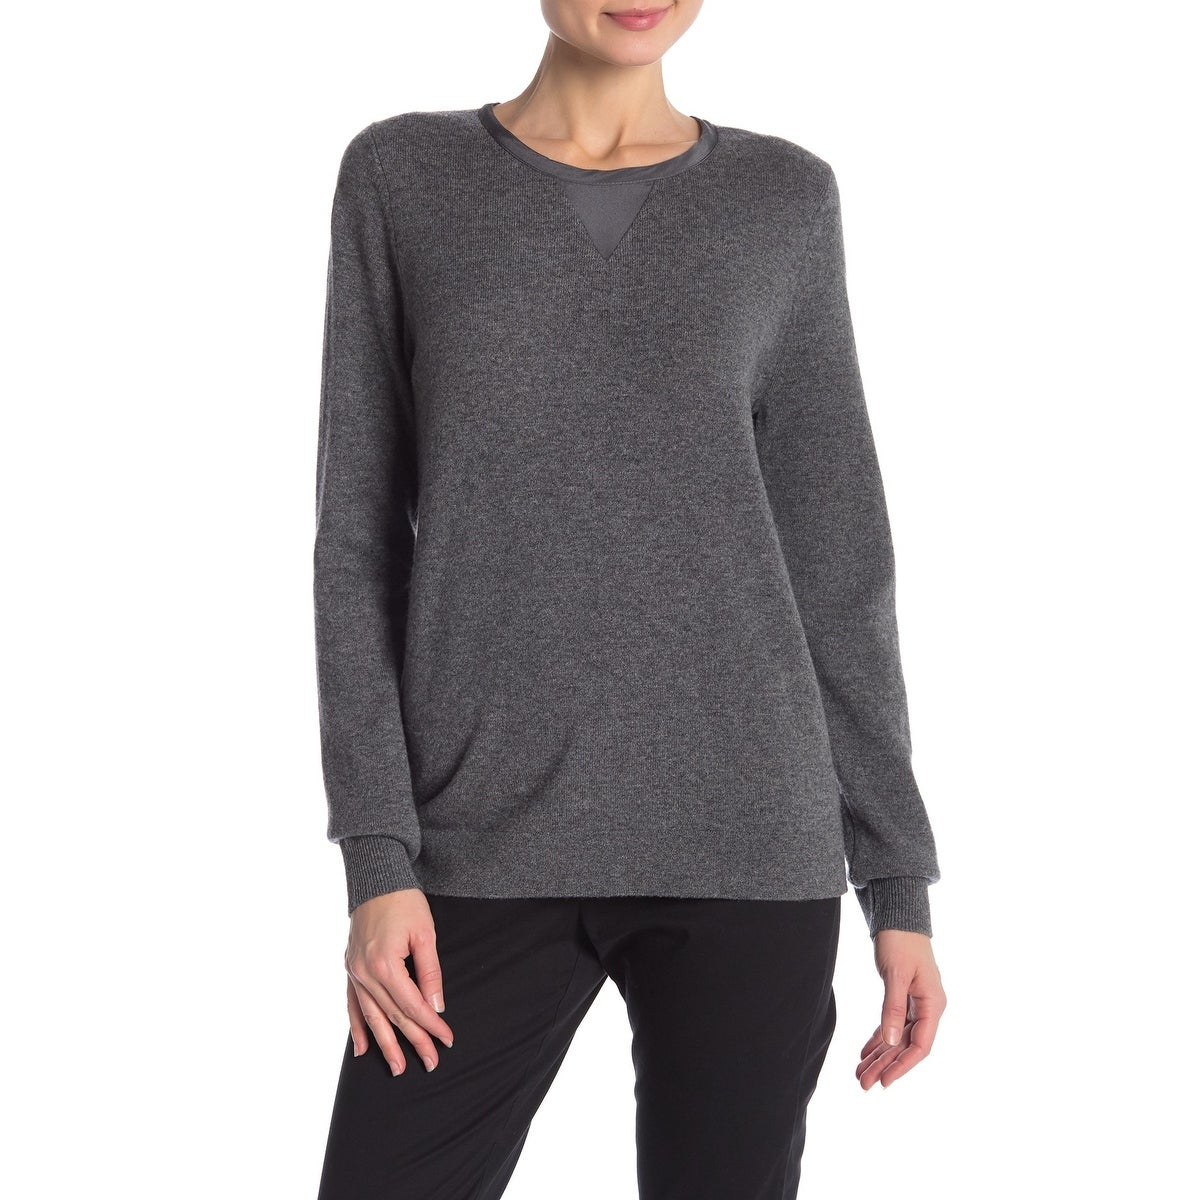 53065eb76b Tommy Bahama Women's Sweaters | Find Great Women's Clothing Deals Shopping  at Overstock - Wrap Yourself In Warmth